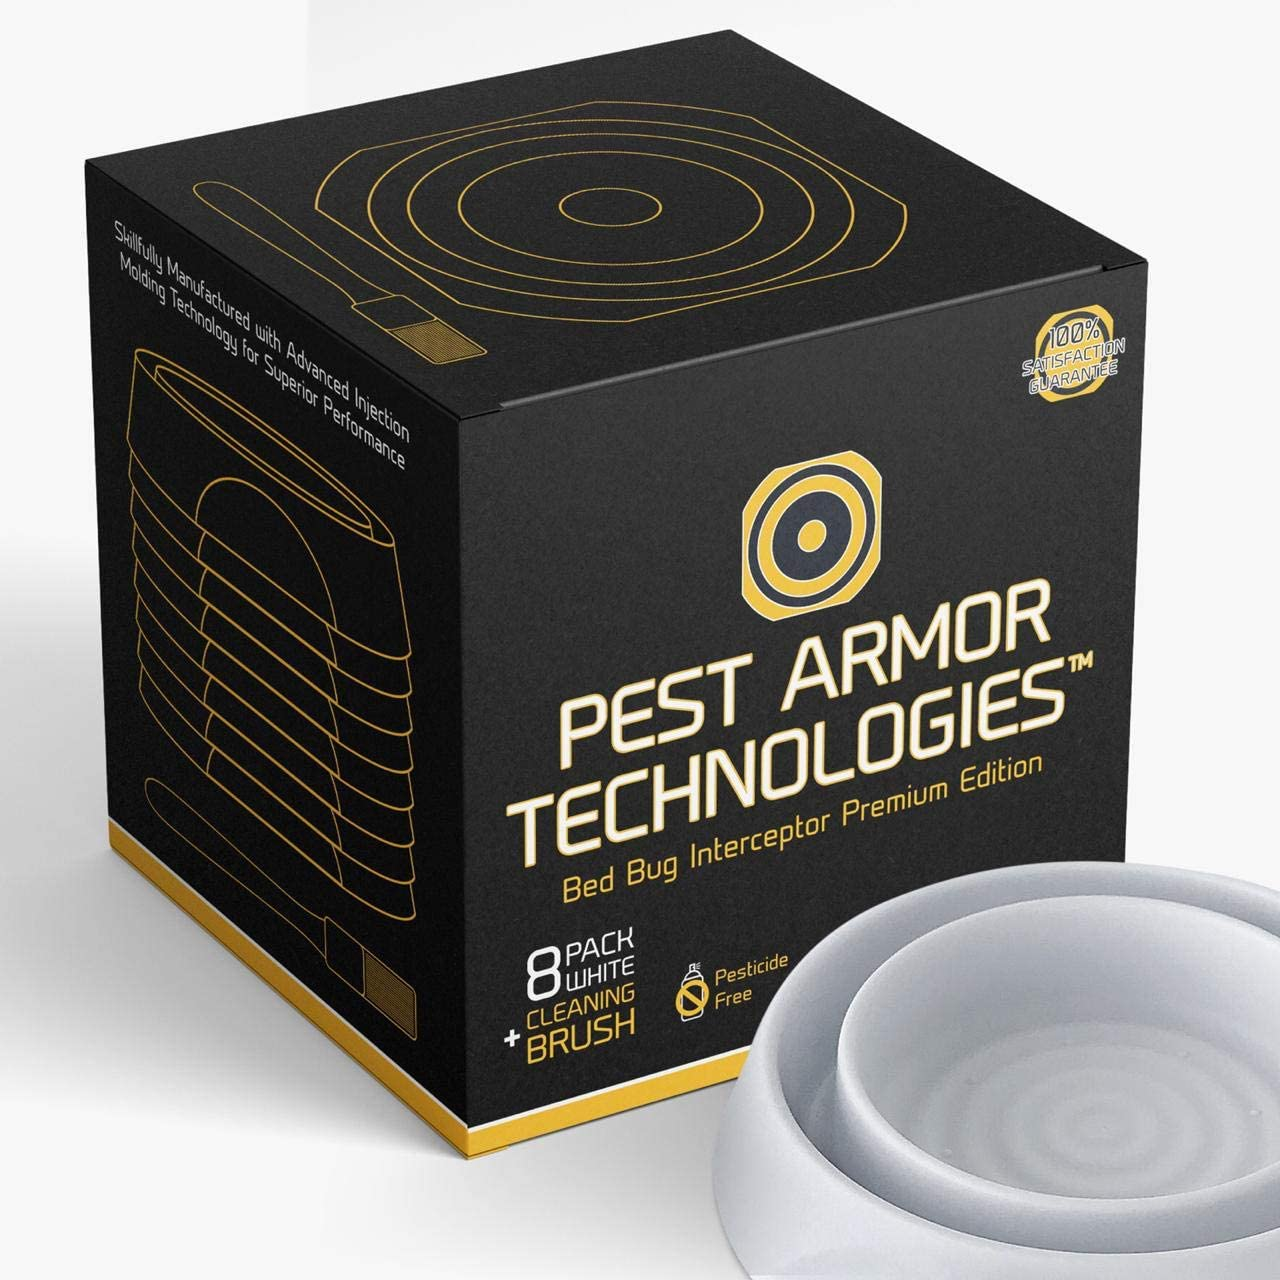 Pest Armor Technologies Bed Bug Interceptors - 8 Pack White | Premium Edition | Bed Bug Trap | Eco Friendly Bed Bug Traps and Detectors for Bed Legs | Indoor